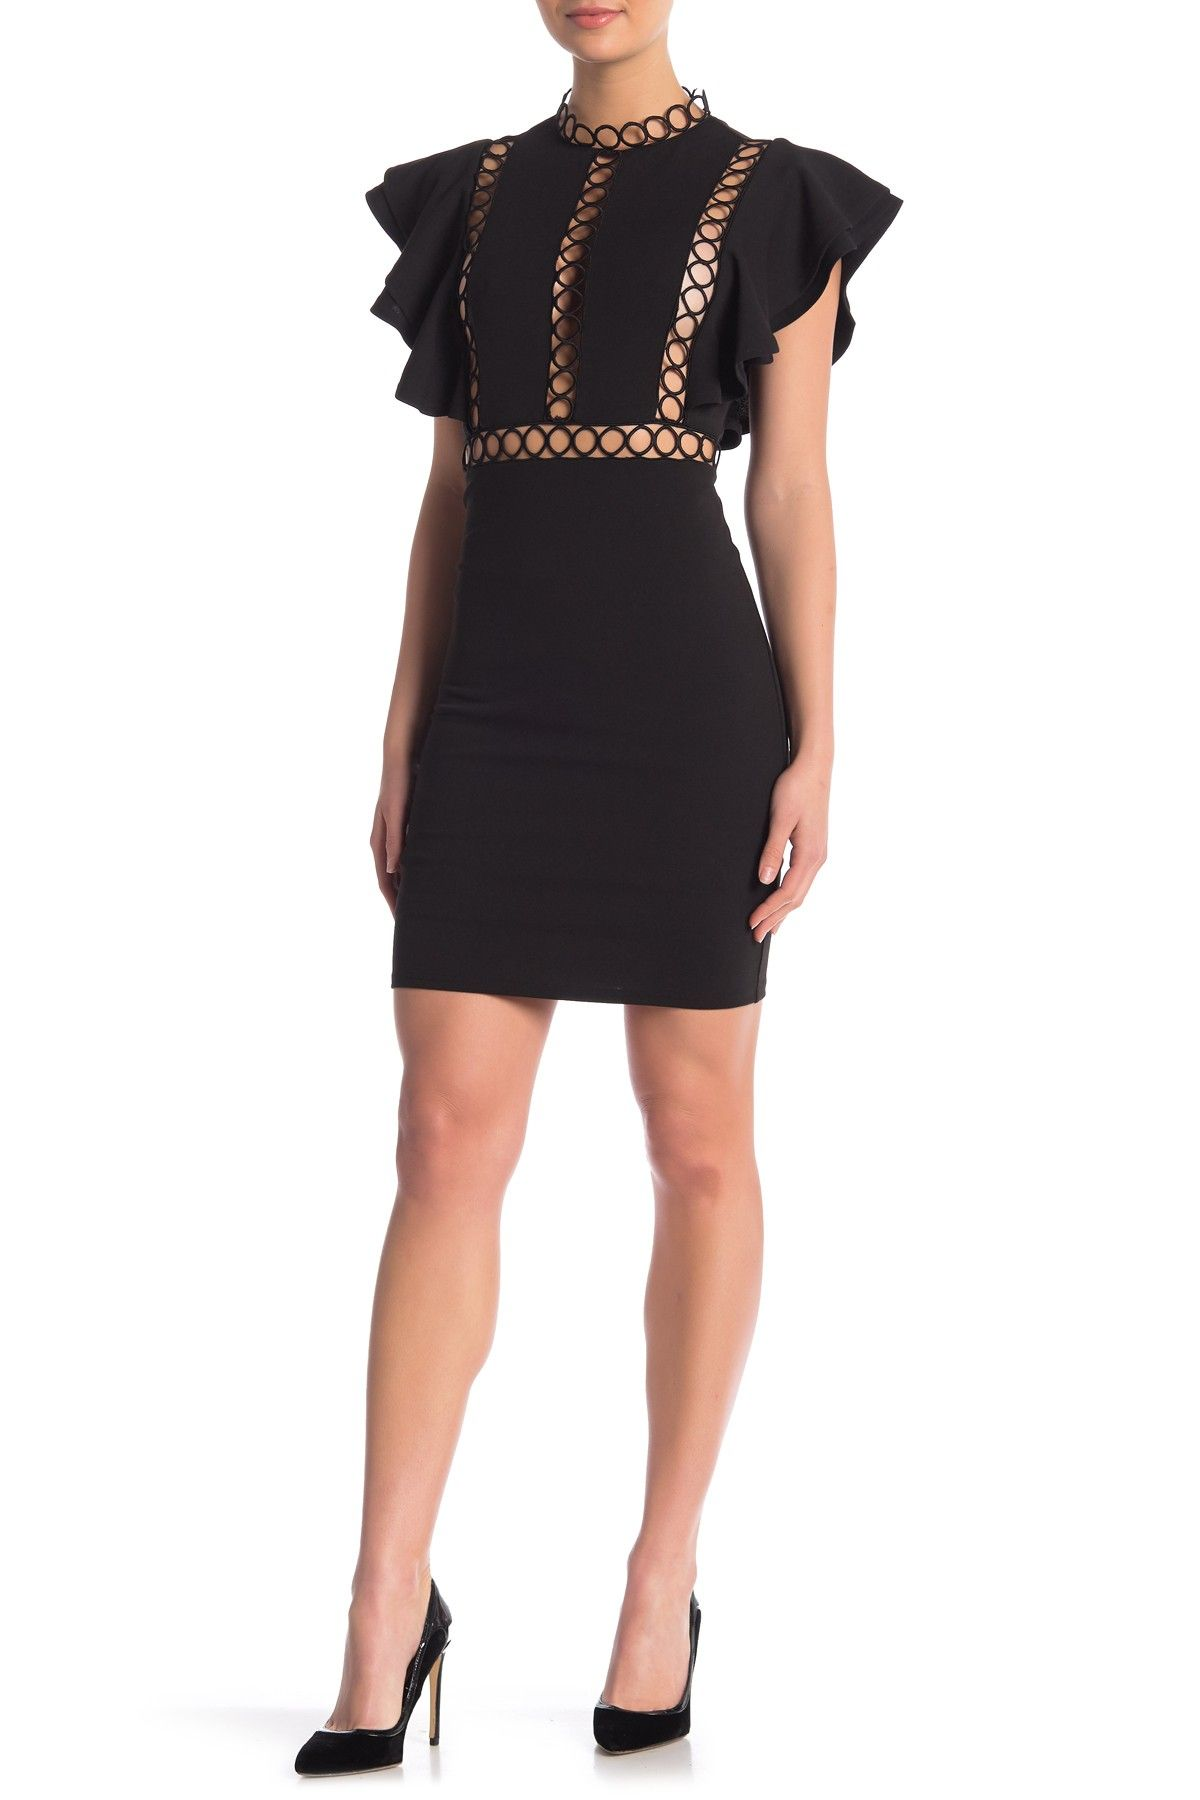 faba35aaf0b Ruffle Cap Sleeve Cutout Dress by Love by Design on  nordstrom rack